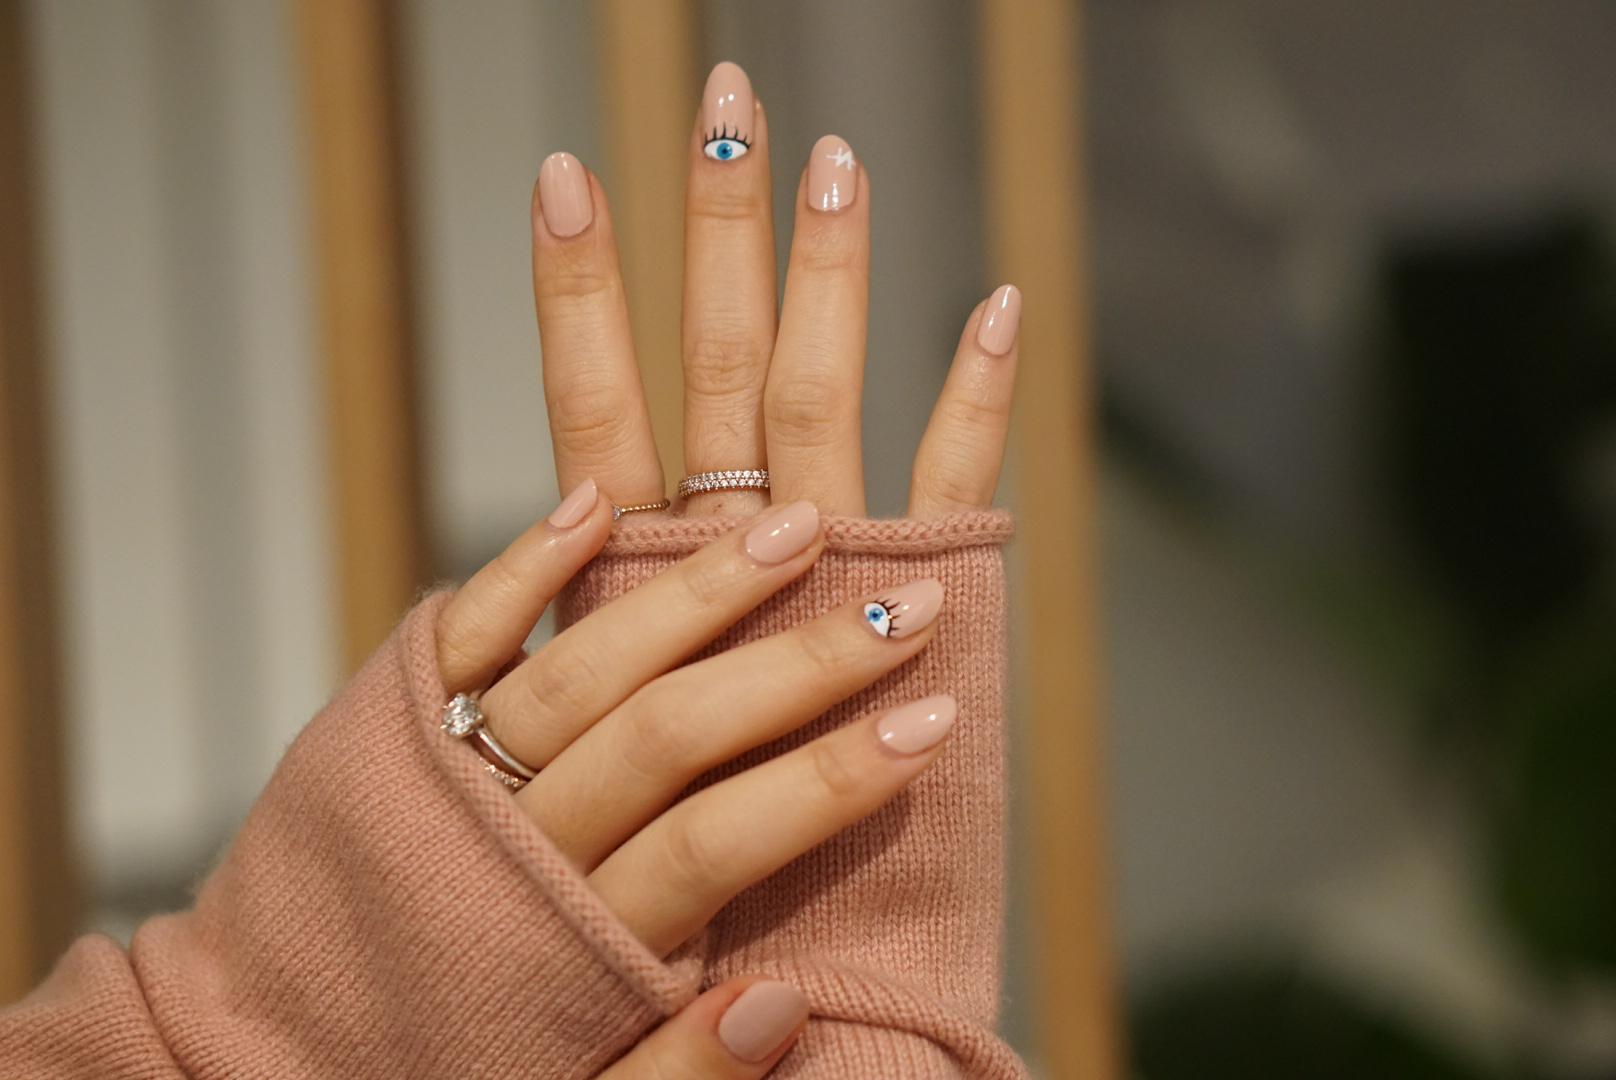 Nail polish base color in No. 06 Buttery Nude.